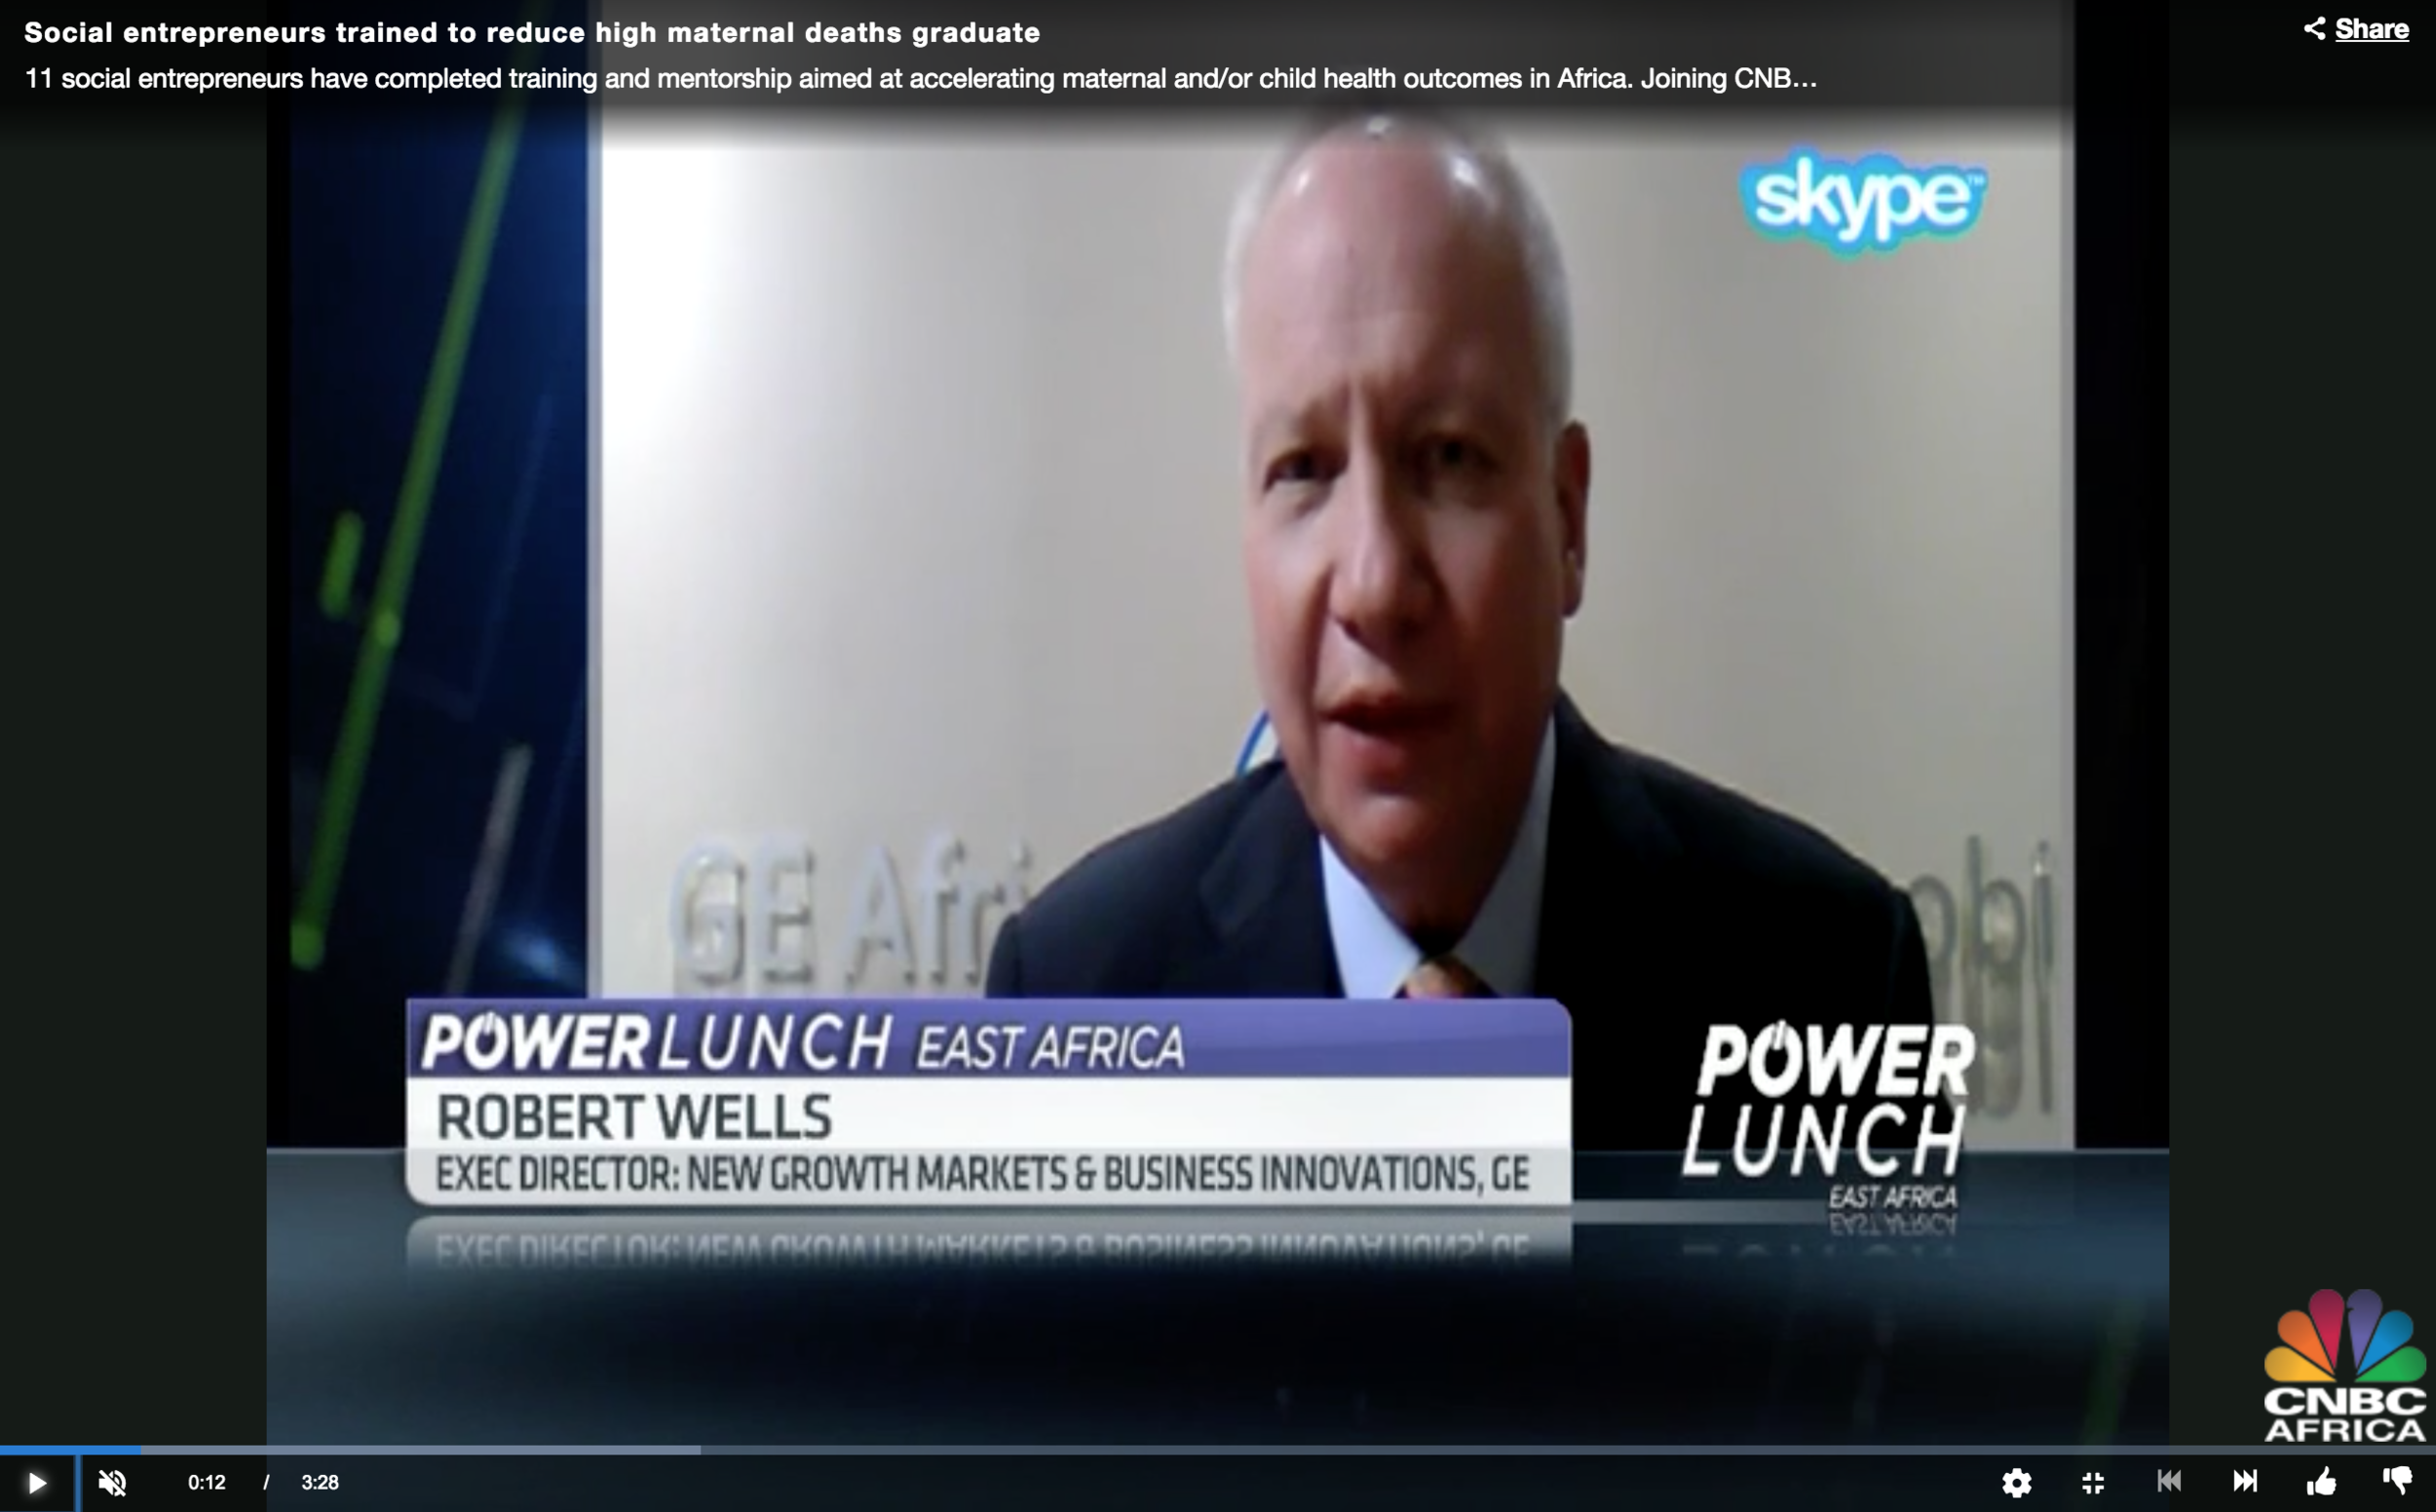 Robert Wells, Executive Director, New Growth Markets and Business Innovations at GE featured on CNBC Africa.